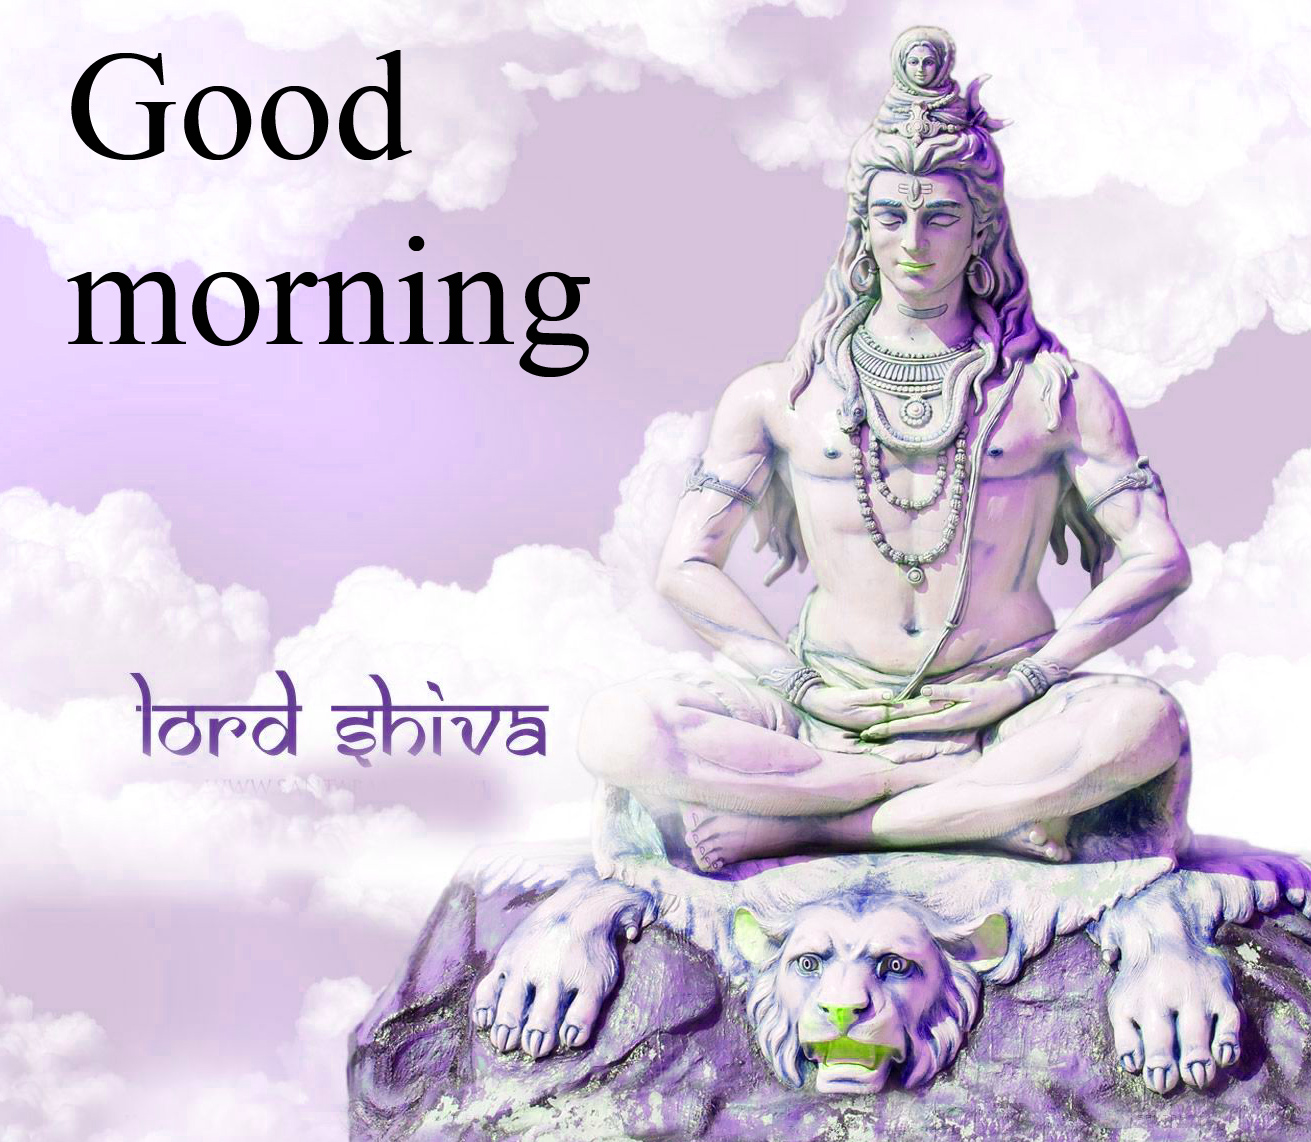 LORD SHIVA GOOD MORNING WISHES IMAGES PHOTO PICS FREE DOWNLOAD